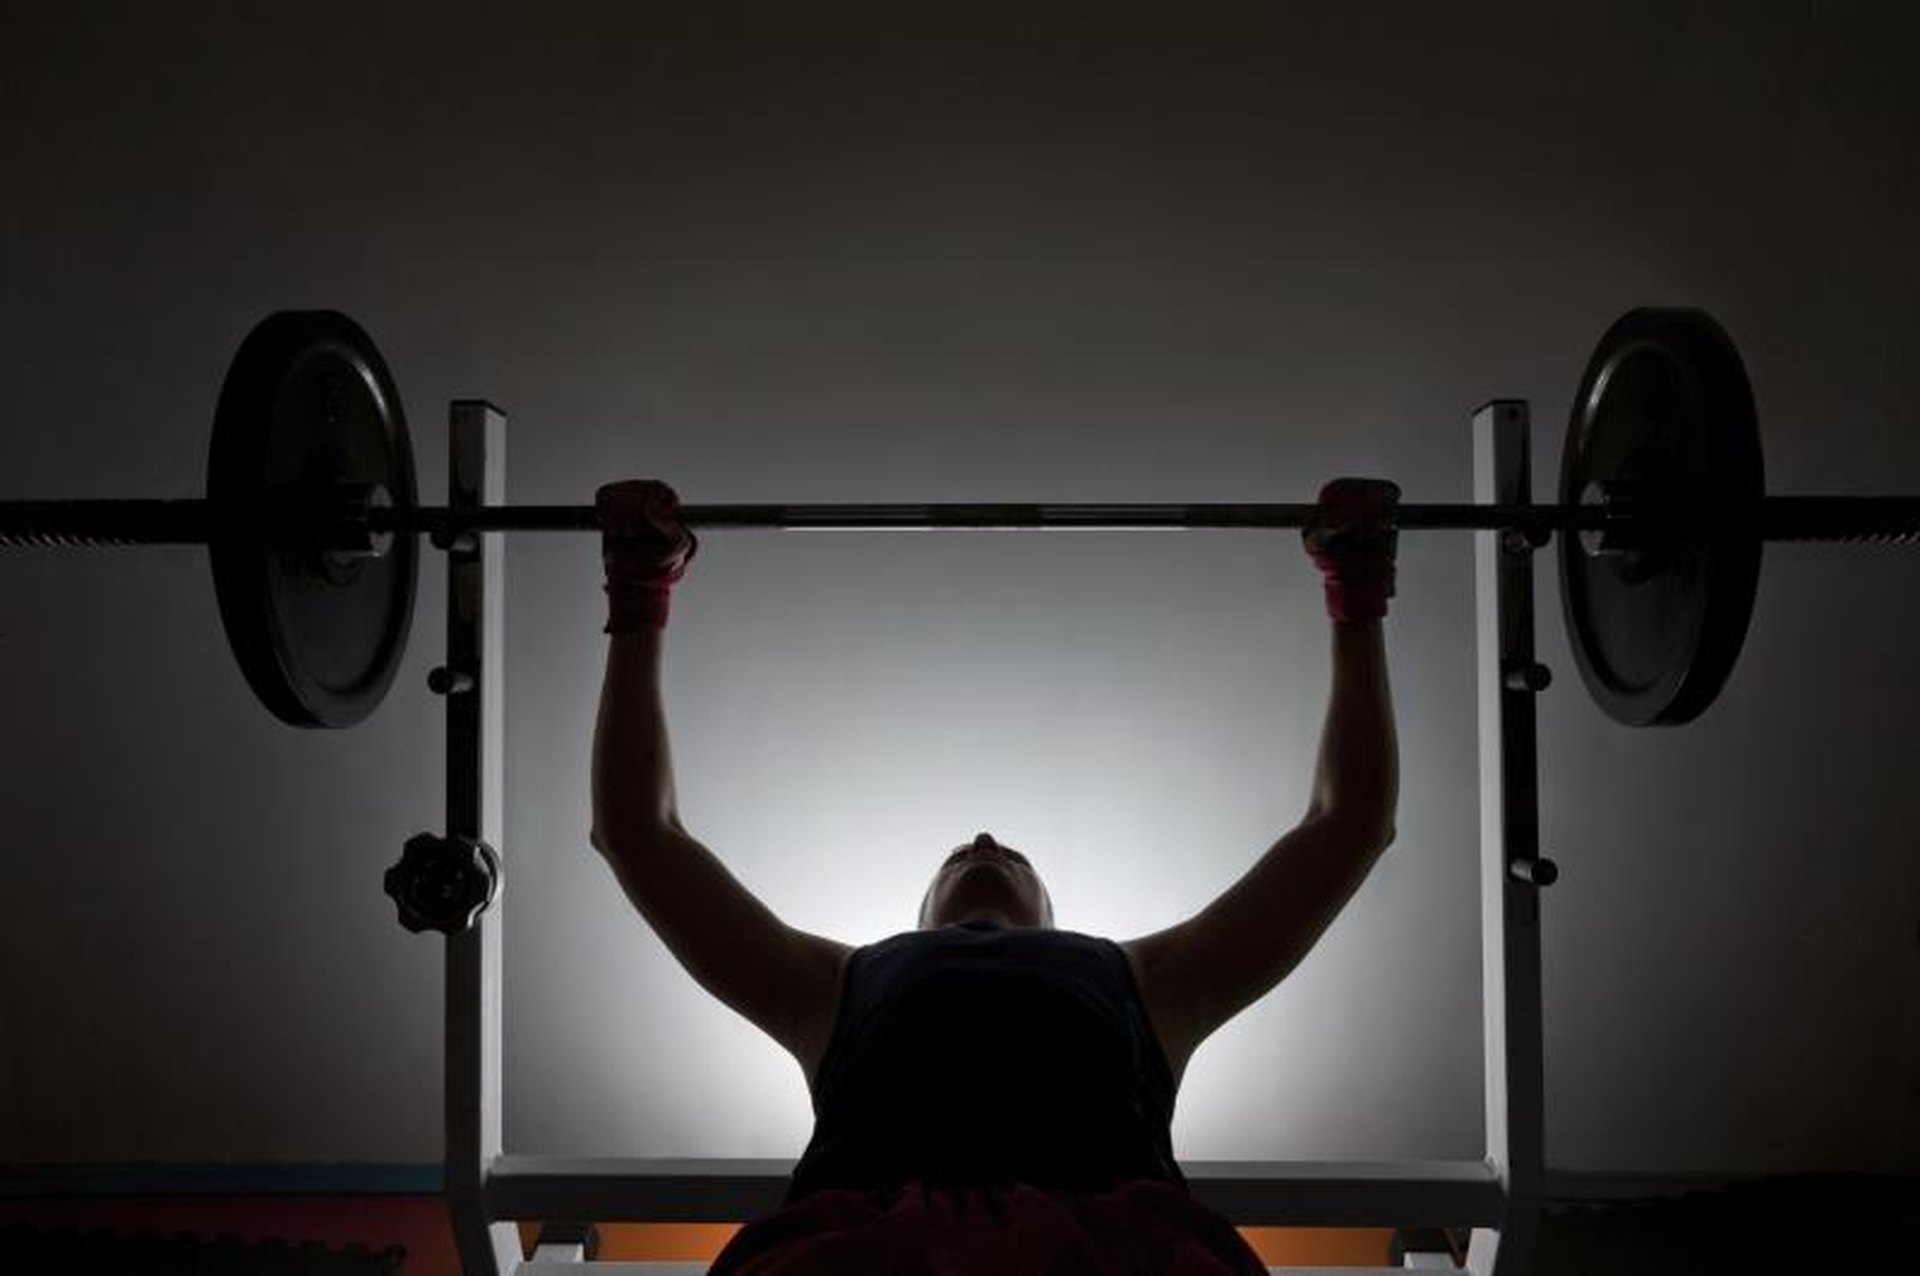 The average weight bench press for a 15 year old livestrong nvjuhfo Choice Image